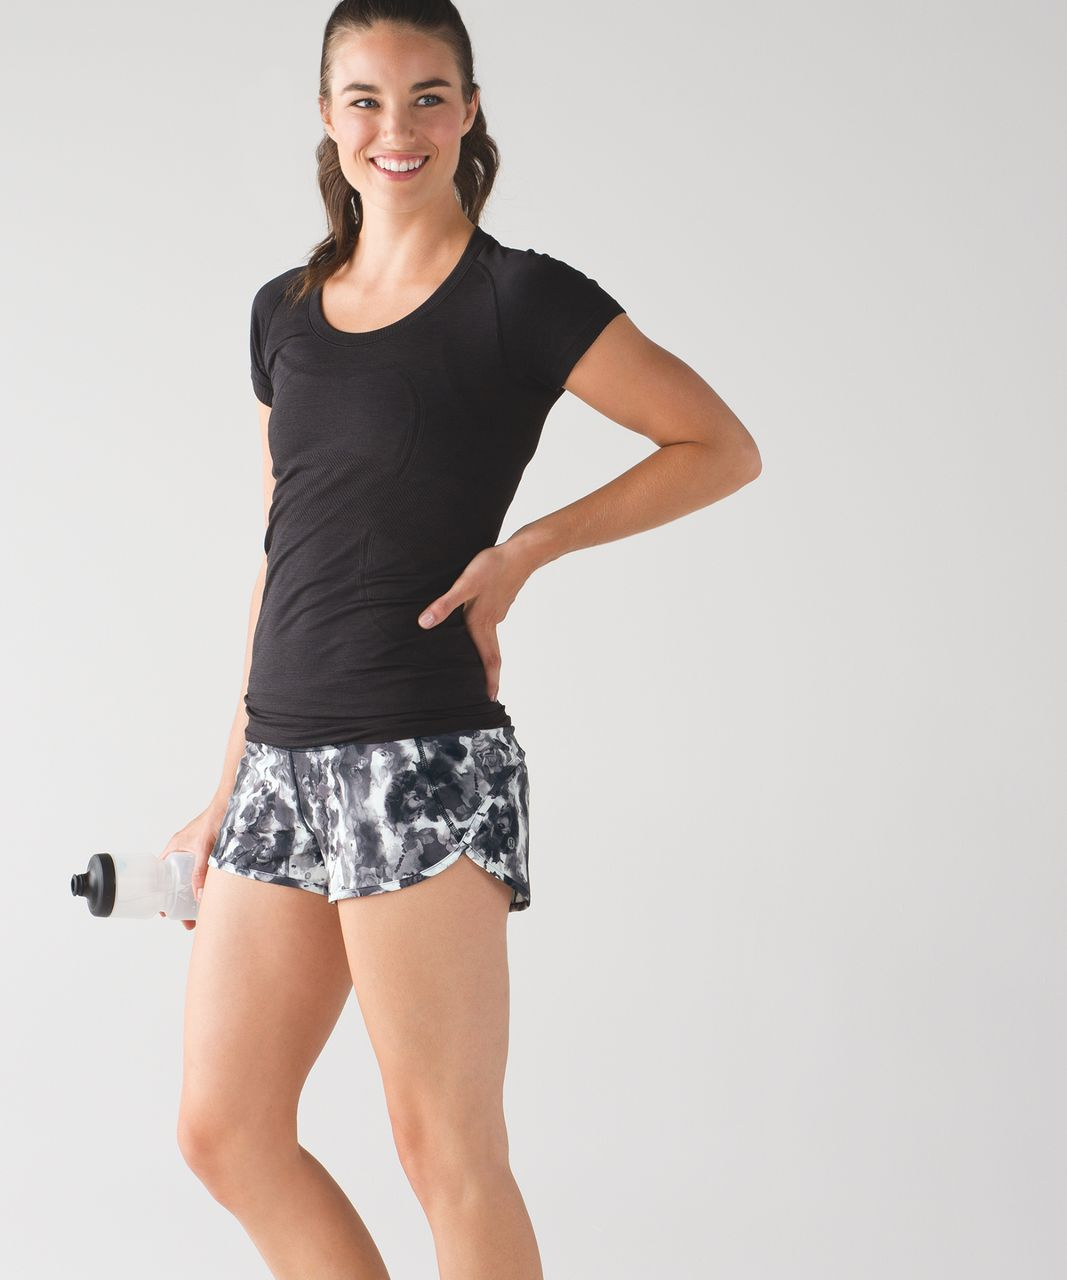 Lululemon Speed Short - Mini Obscurred Black Dusty Mauve / Black